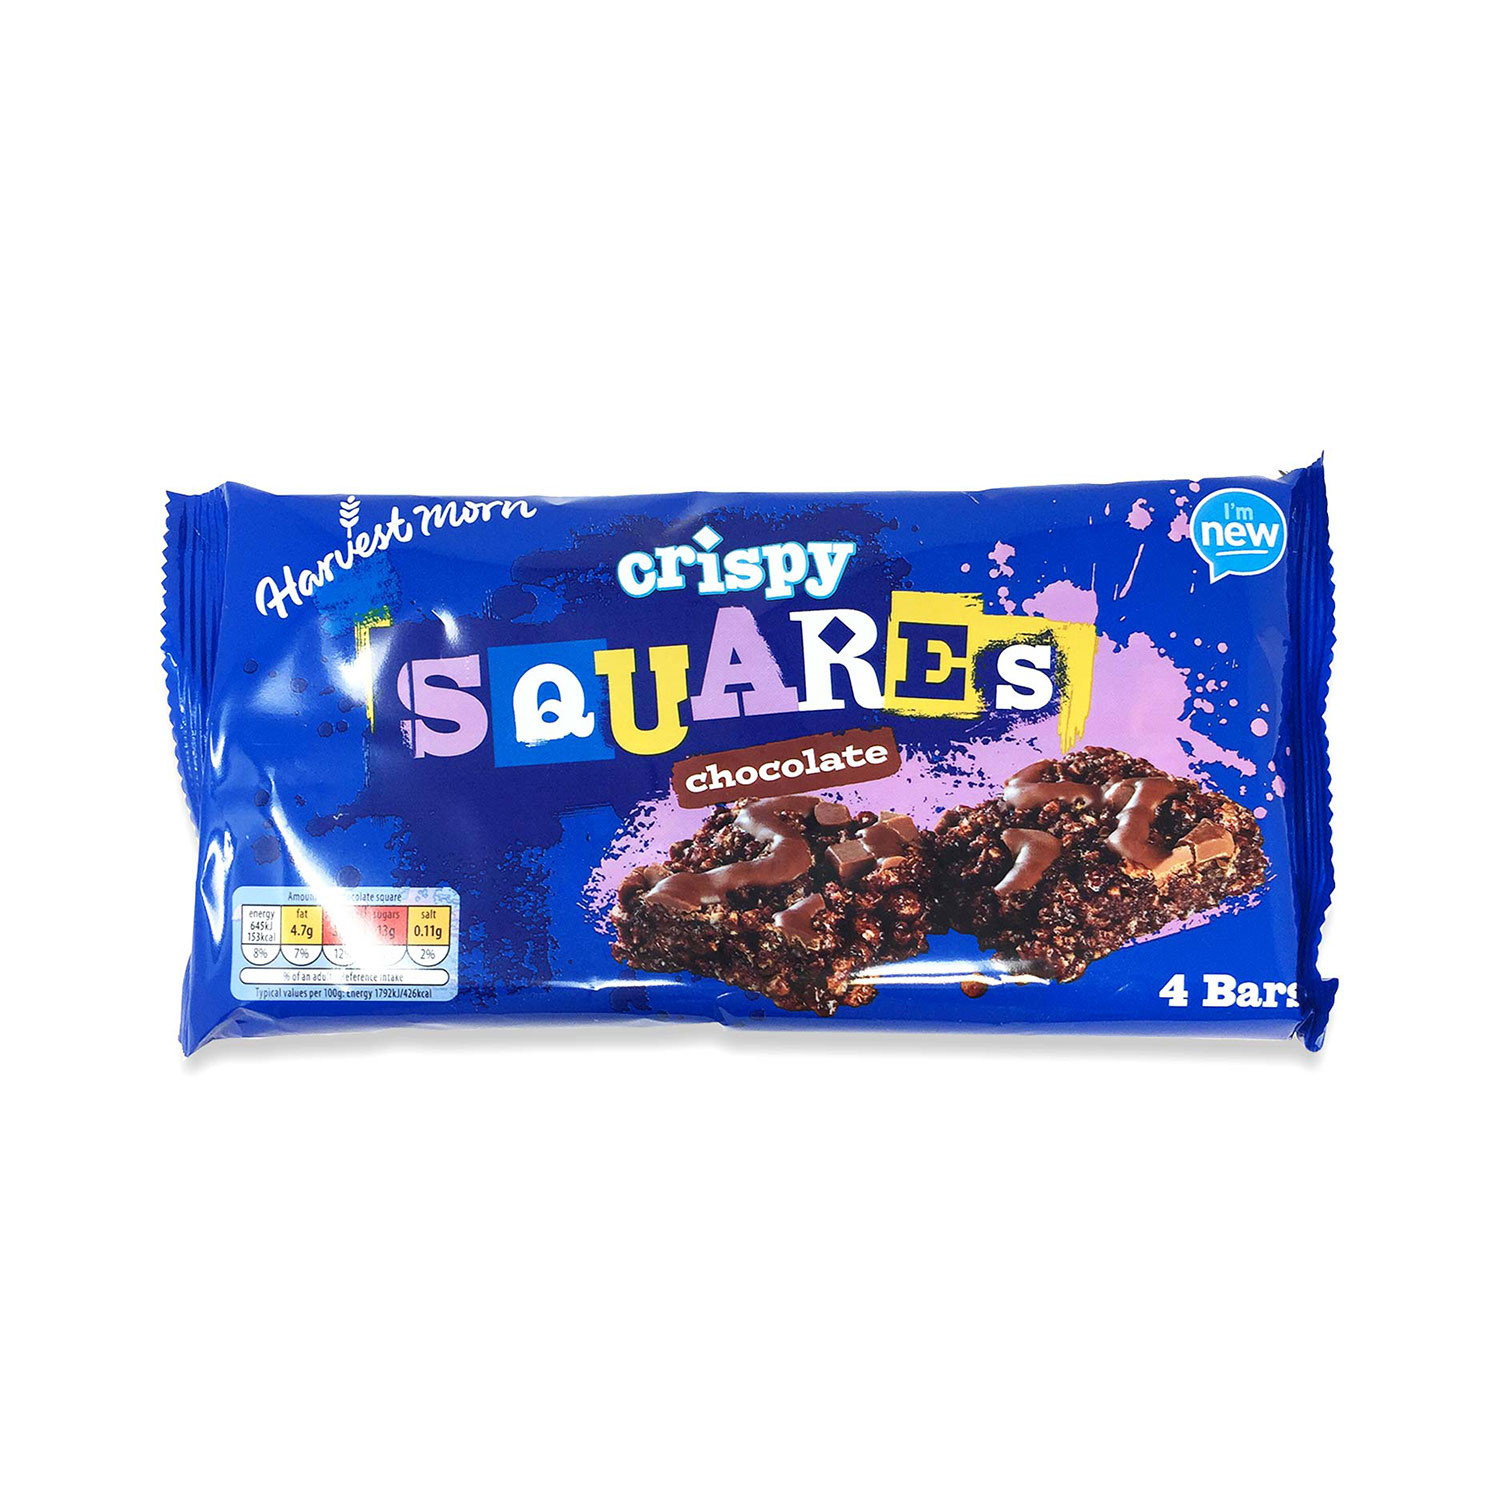 Crispy Squares Bar Chocolate